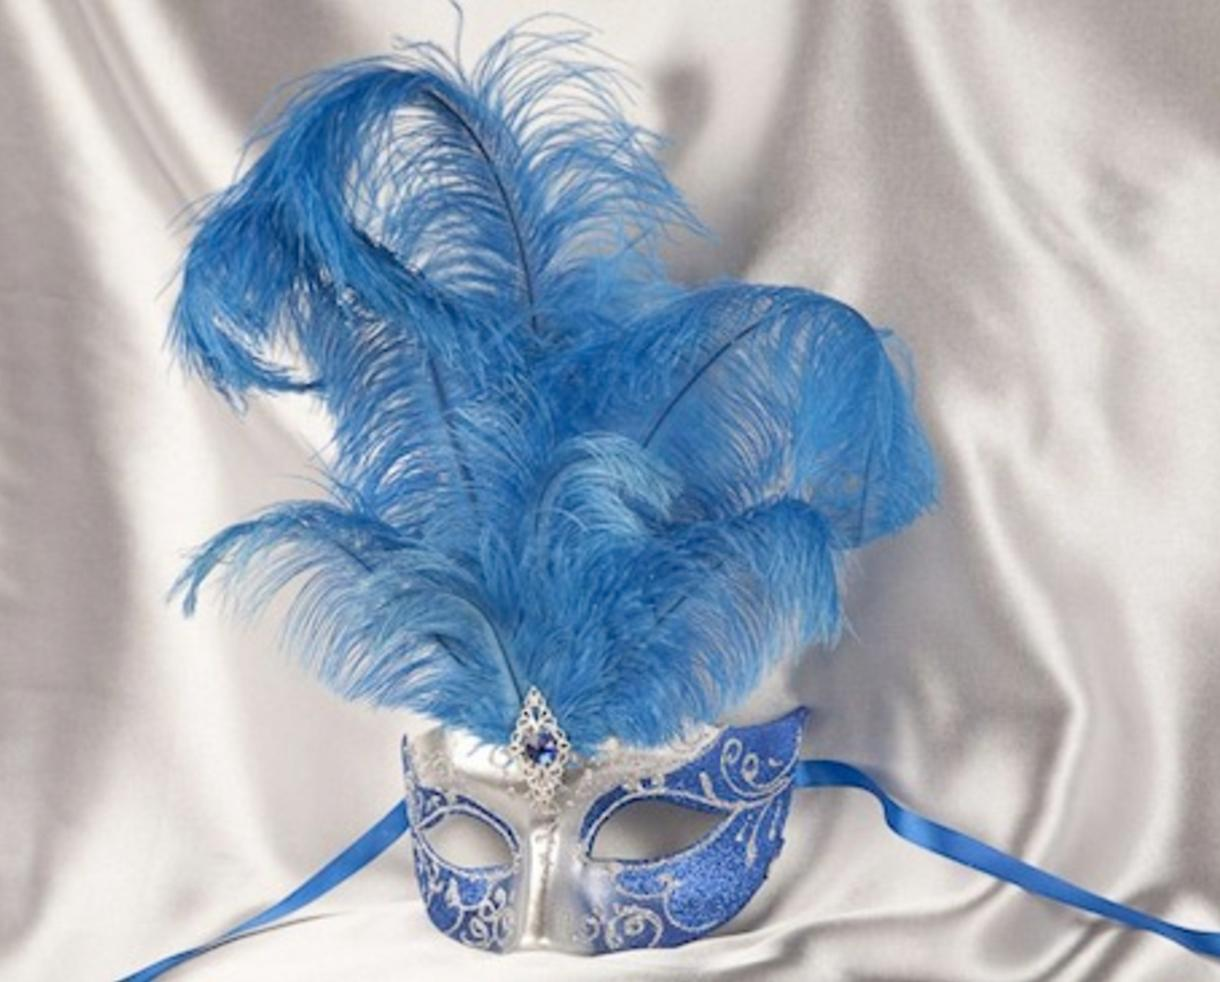 $49 for Adult AND Child Entrance to First Annual Snowball and Ice Masquerade Ball at Bethesda North Marriott Hotel ($75 value) OR $225 for All-Inclusive Party at Cutie Patootie Birthdays and Such